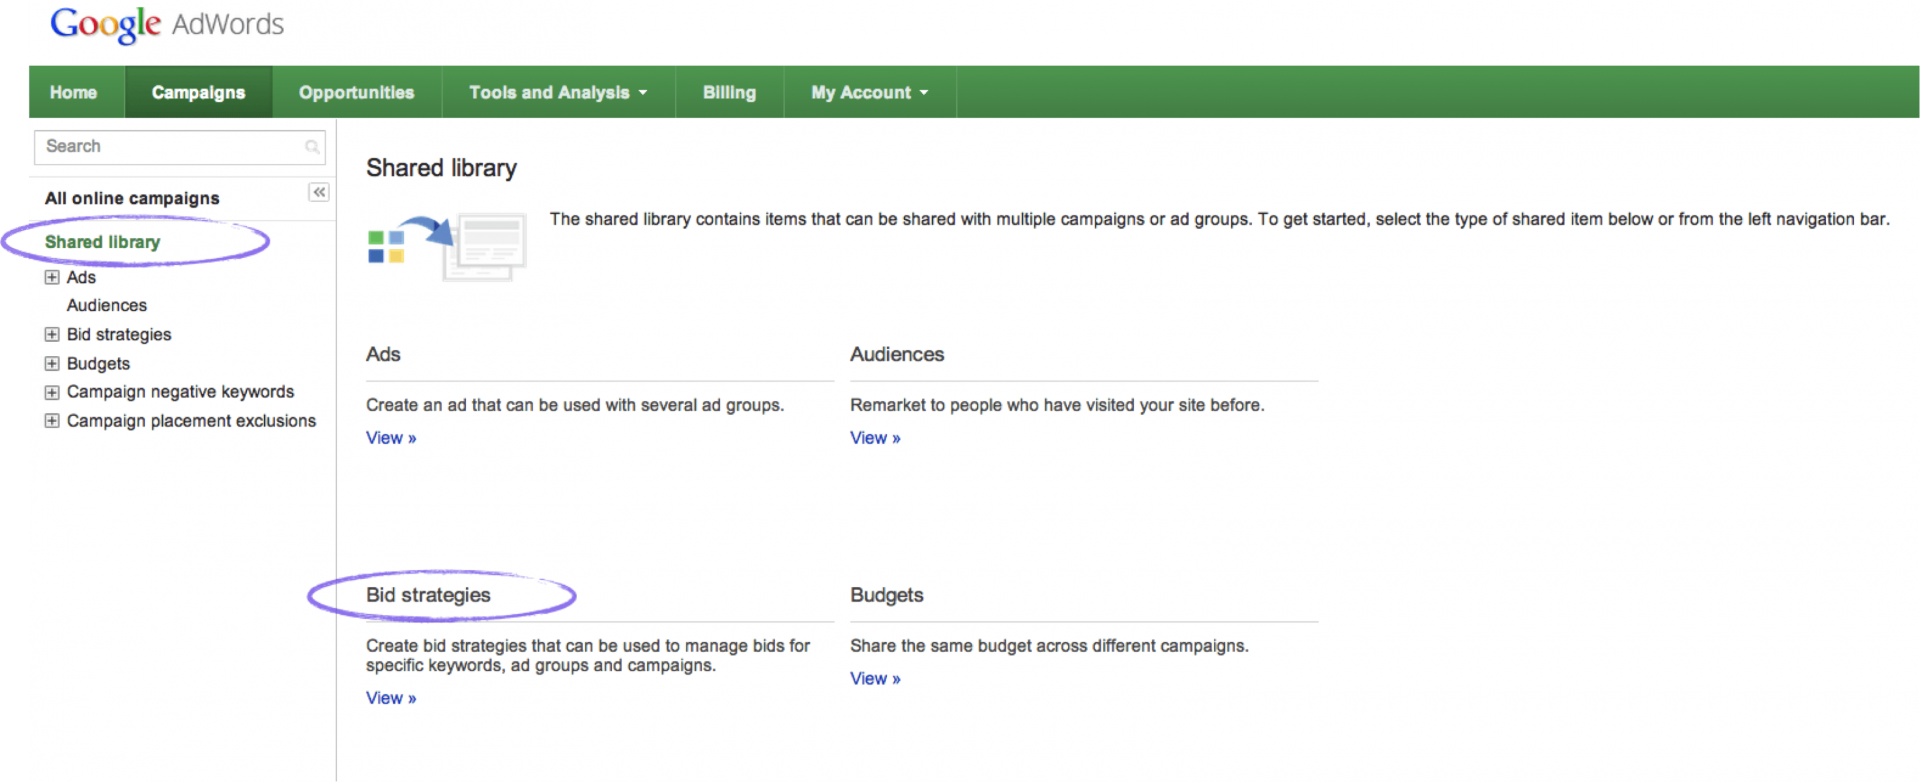 How to find enhanced campaigns bid strategies section in AdWords